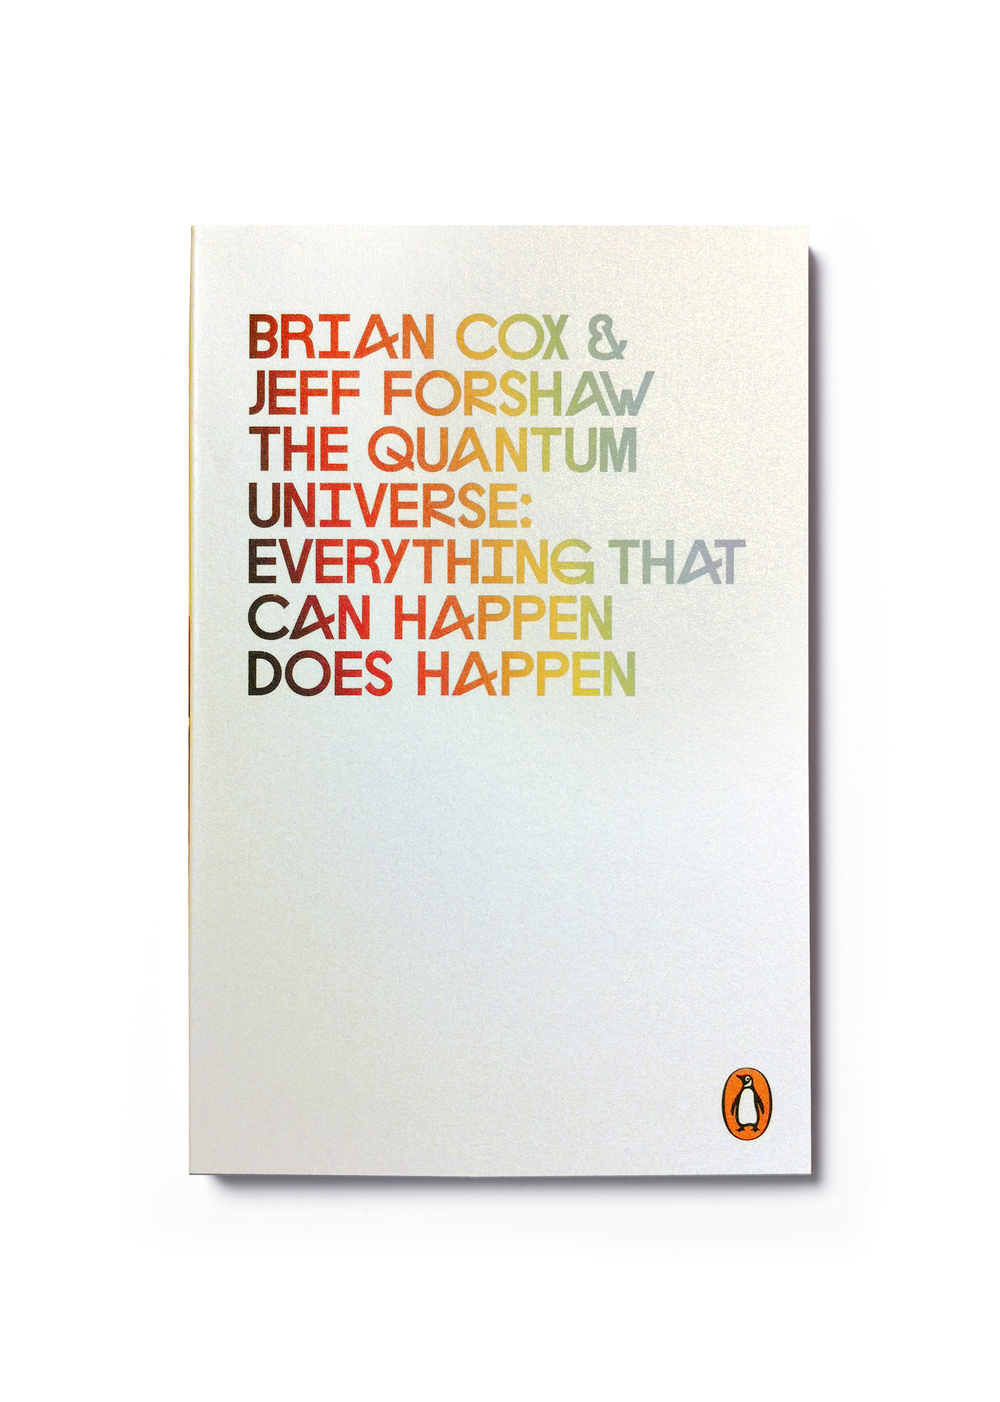 The Quantum Universe by Brian Cox & Jeff Forshaw (paperback edition)  - Art Direction: Peter Saville Design: Jim Stoddart Photograph: Tina Negas